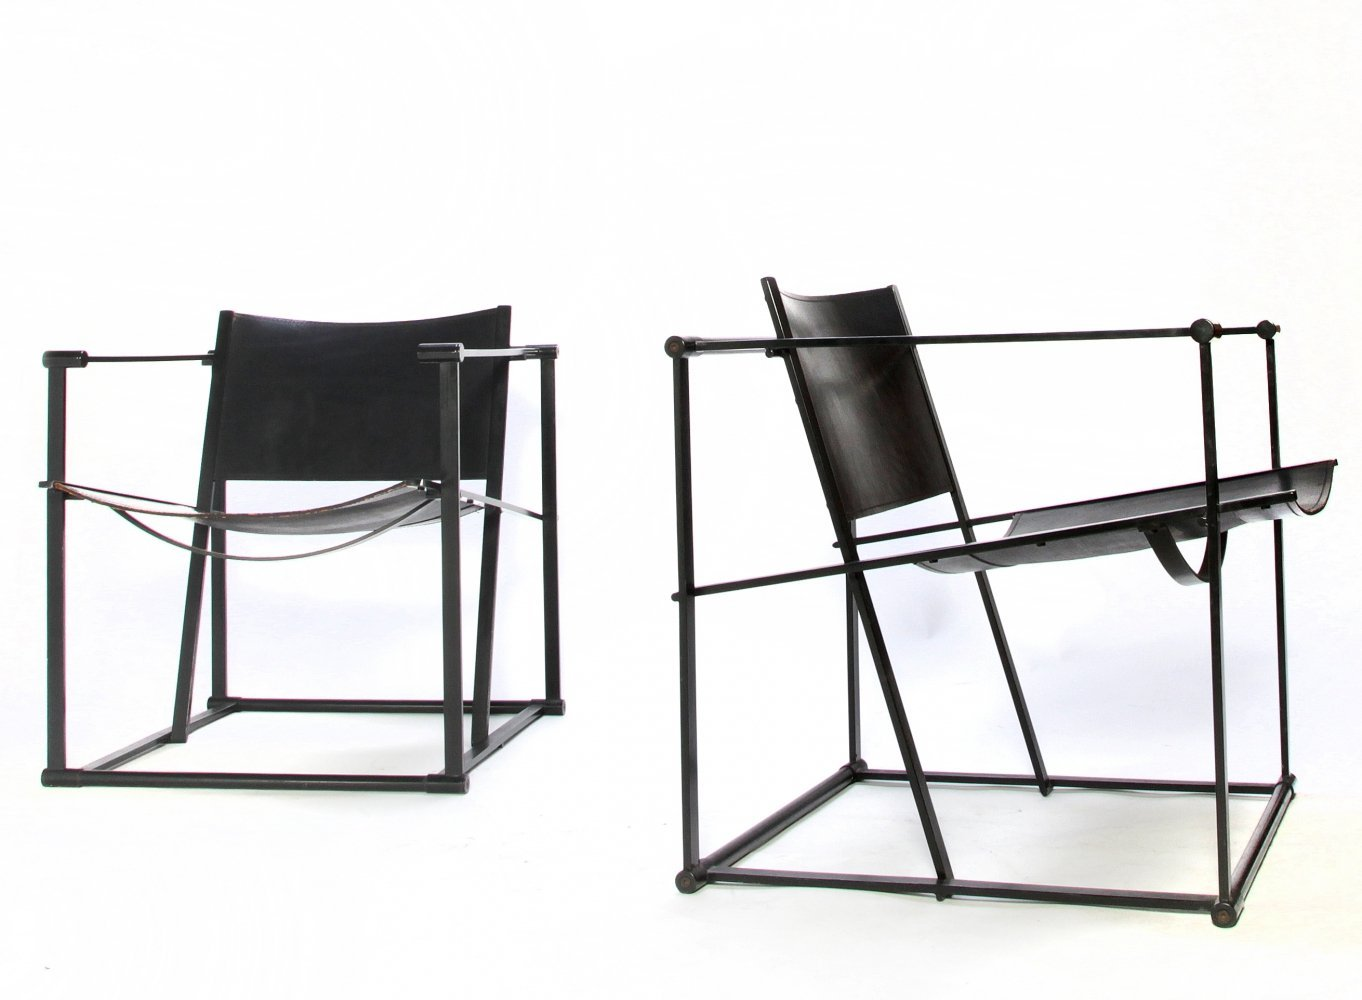 Pair of thick leather arm chairs by Radboud van Beekum for Pastoe, 1980s